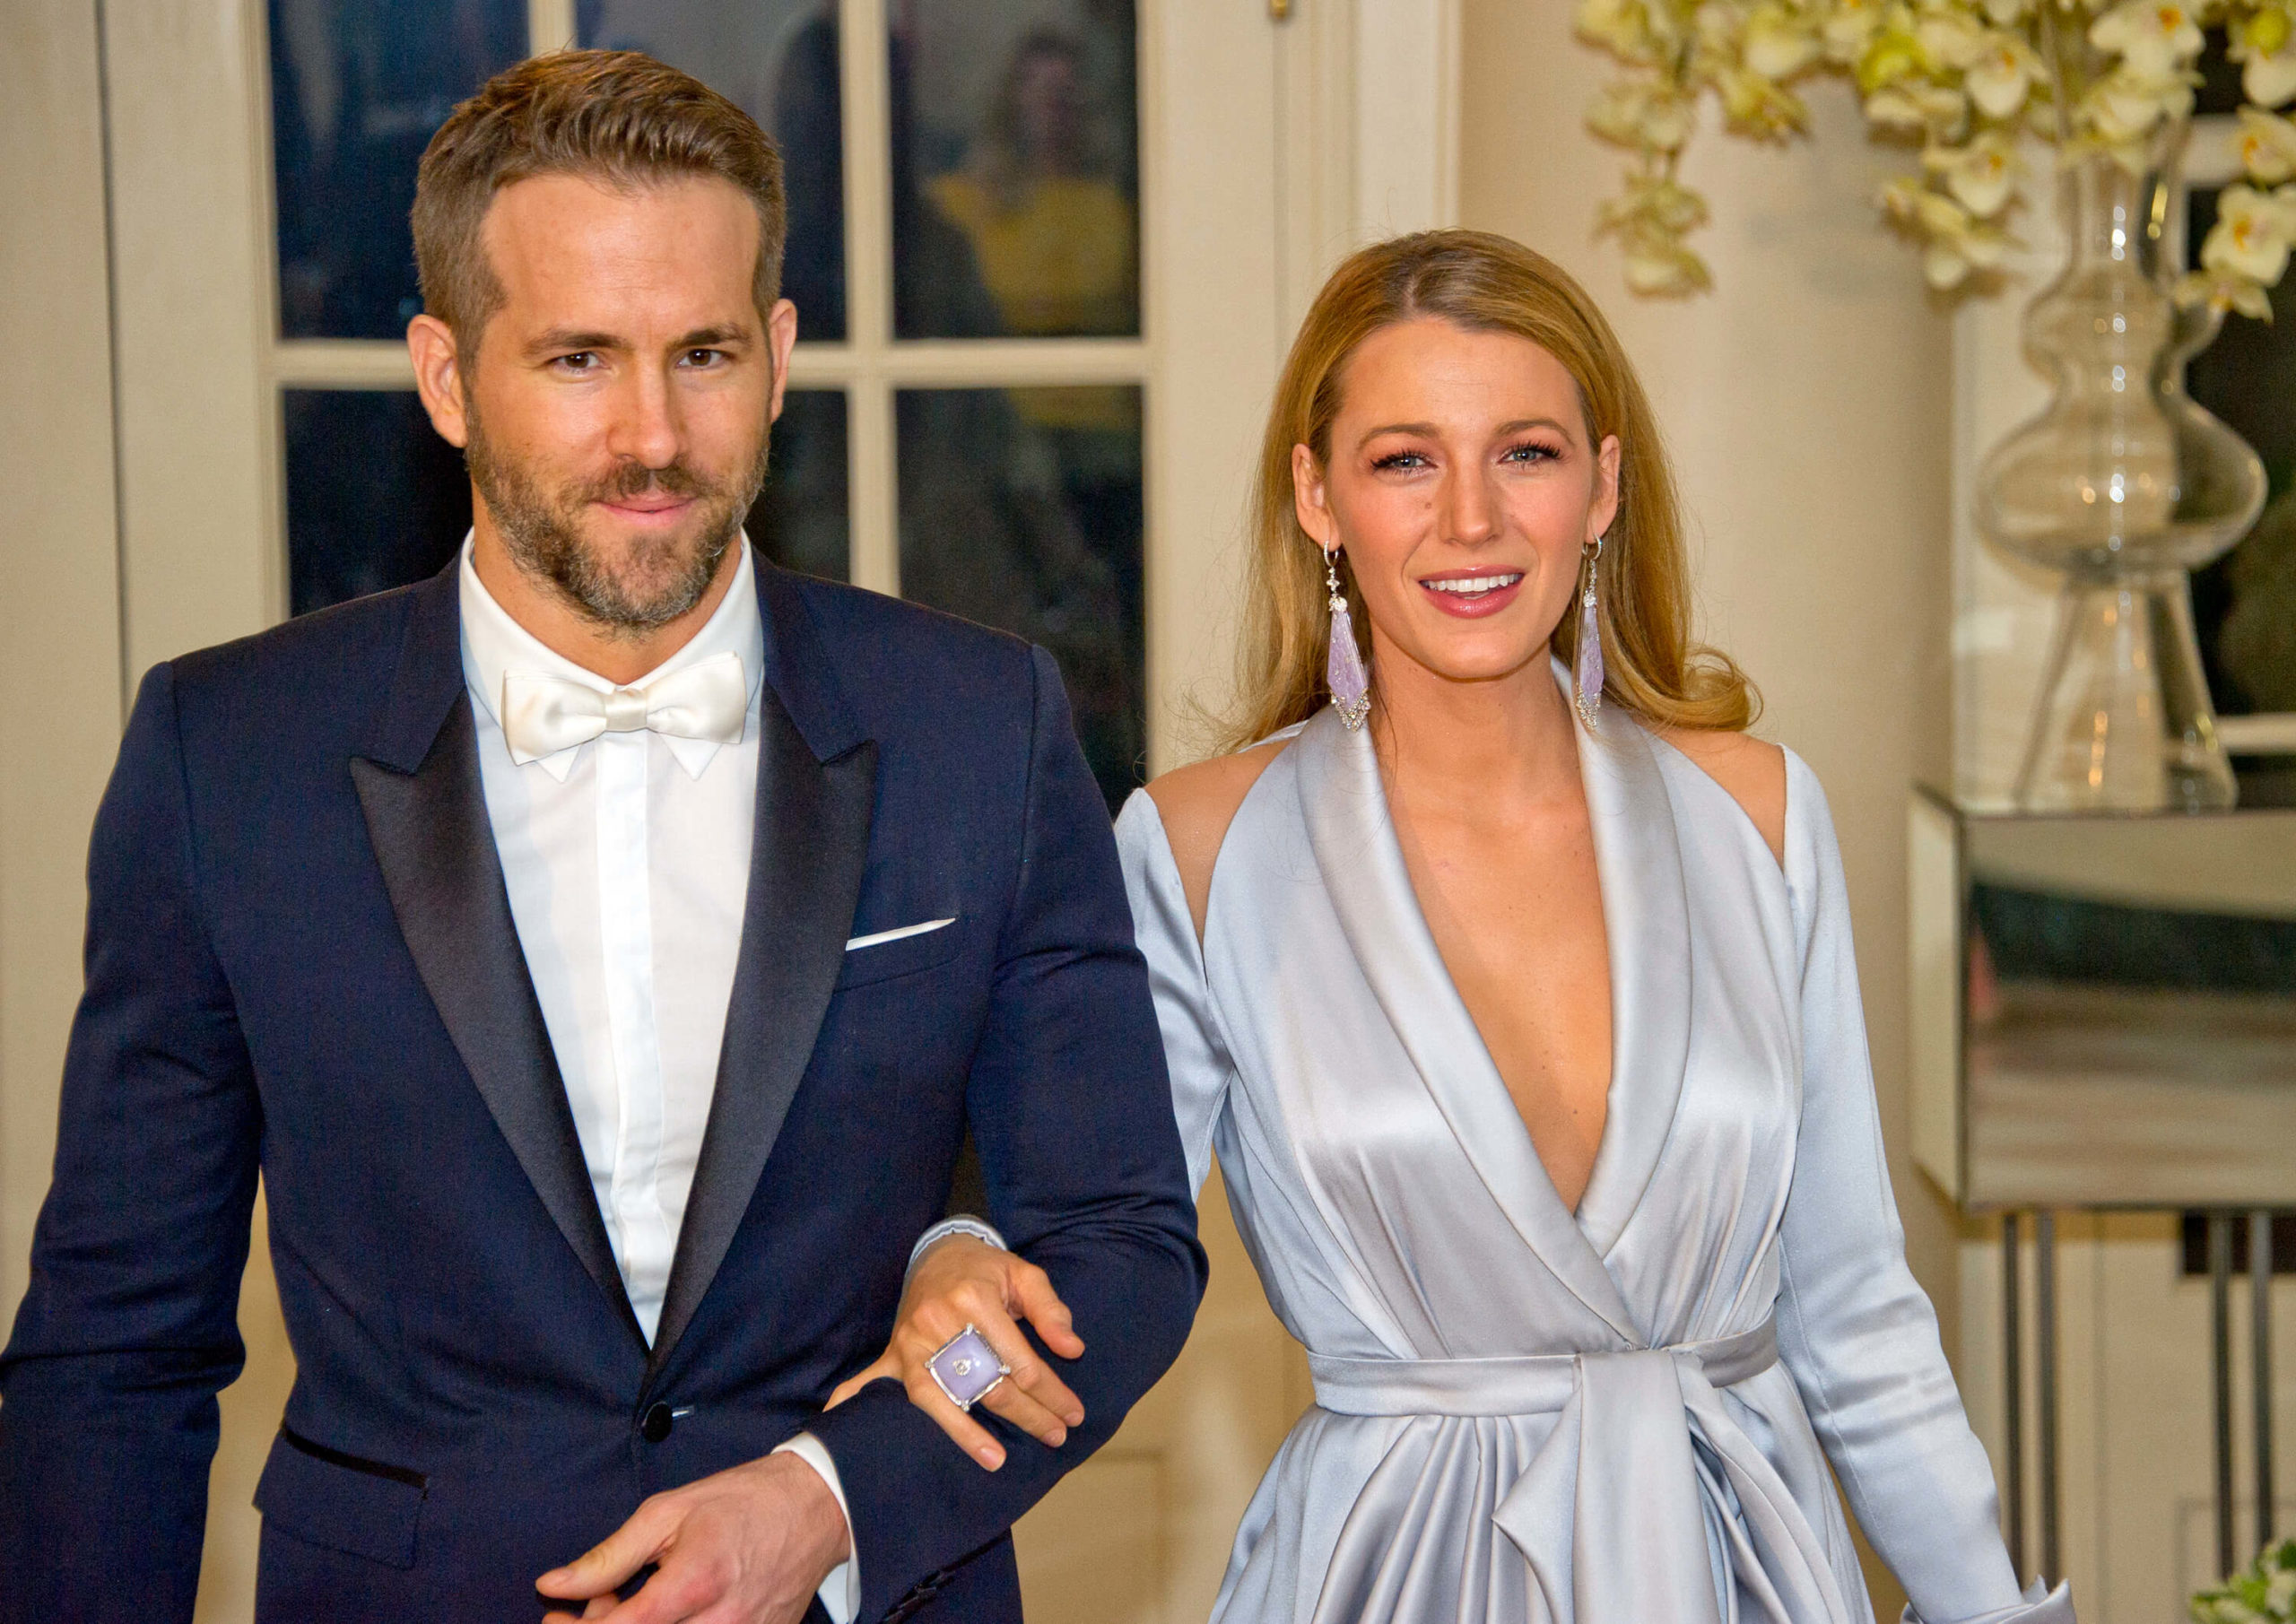 Ryan Reynolds and Blake made the gesture to support hunger relief organizations in the wake of the spread of COVID-19